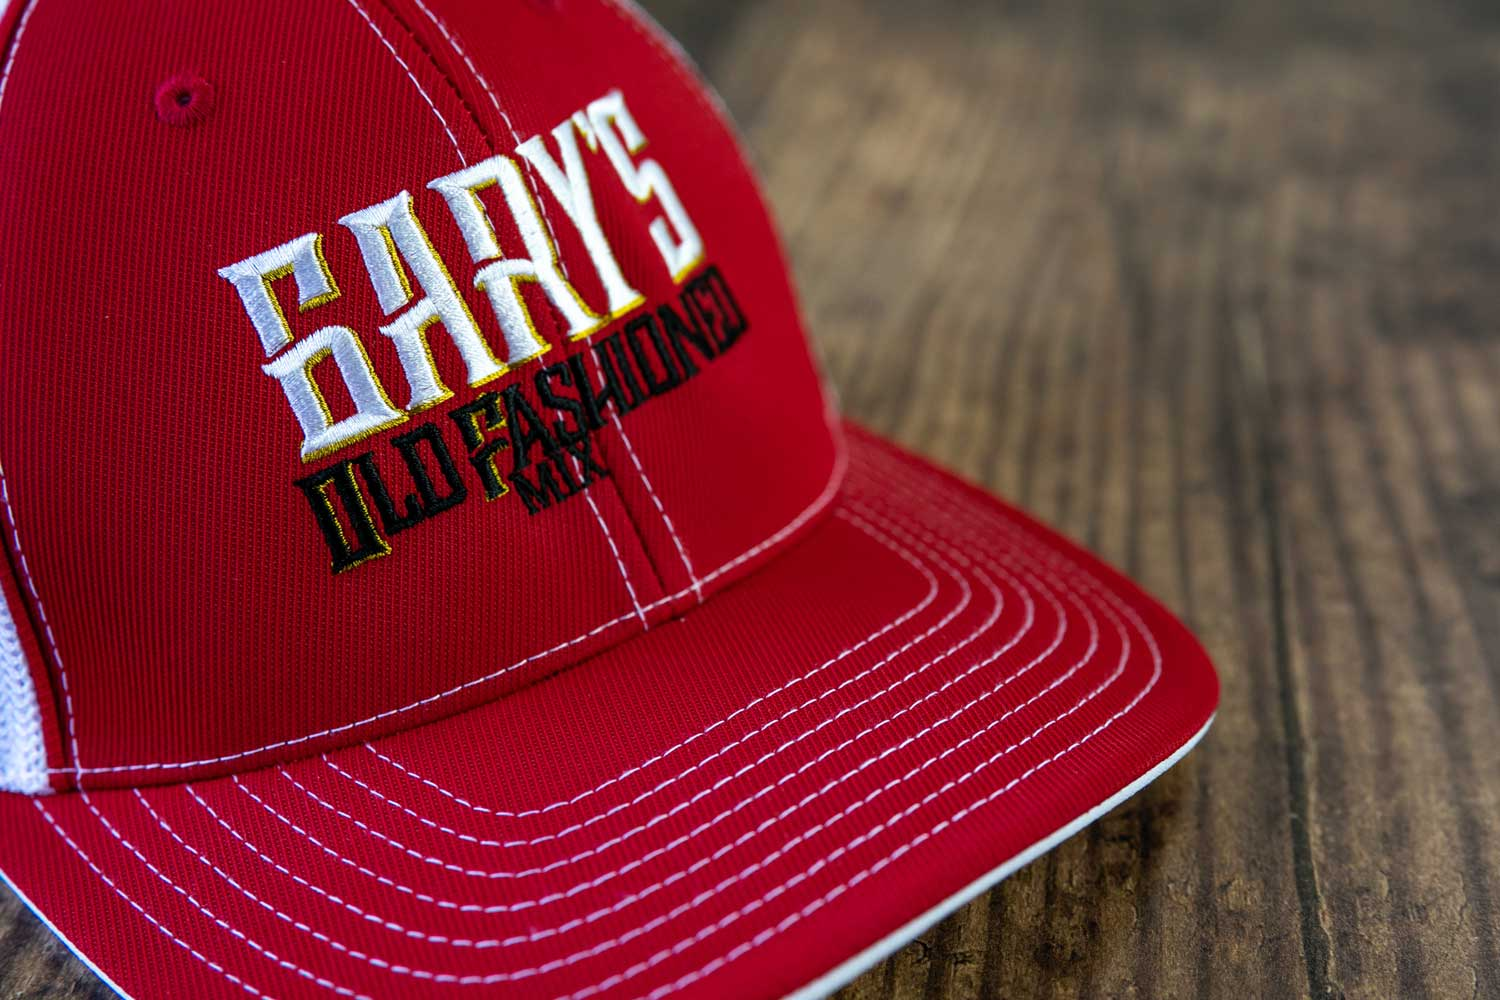 Gary's Old Fashioned Mix Logo Hat - Red/White